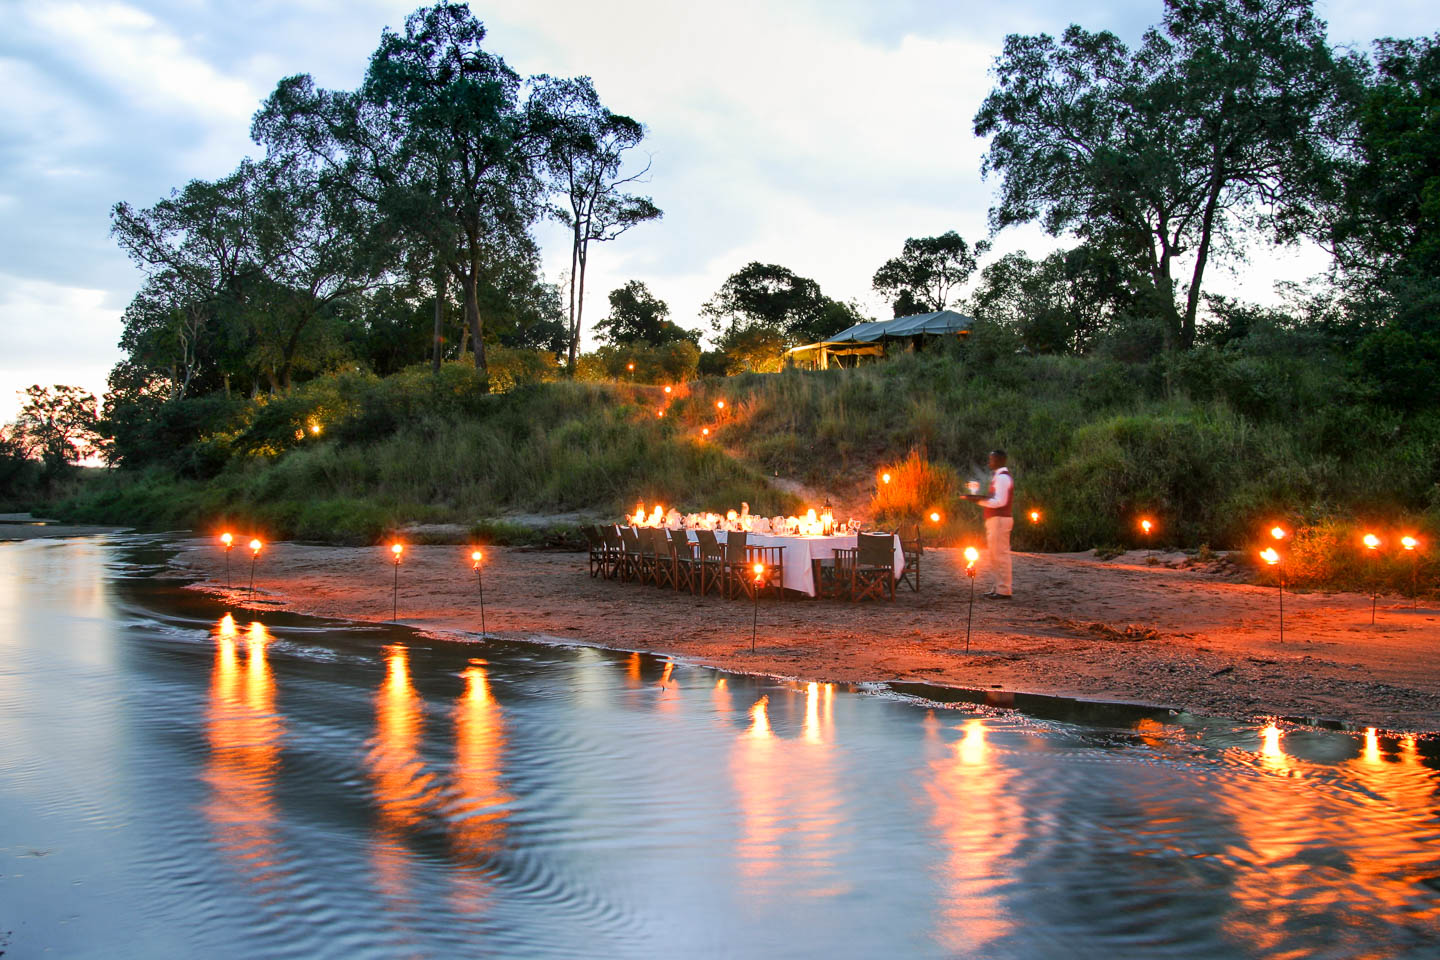 serengeti safari camps Great Wildebeest Migration salas camp sand river dinner candle lights